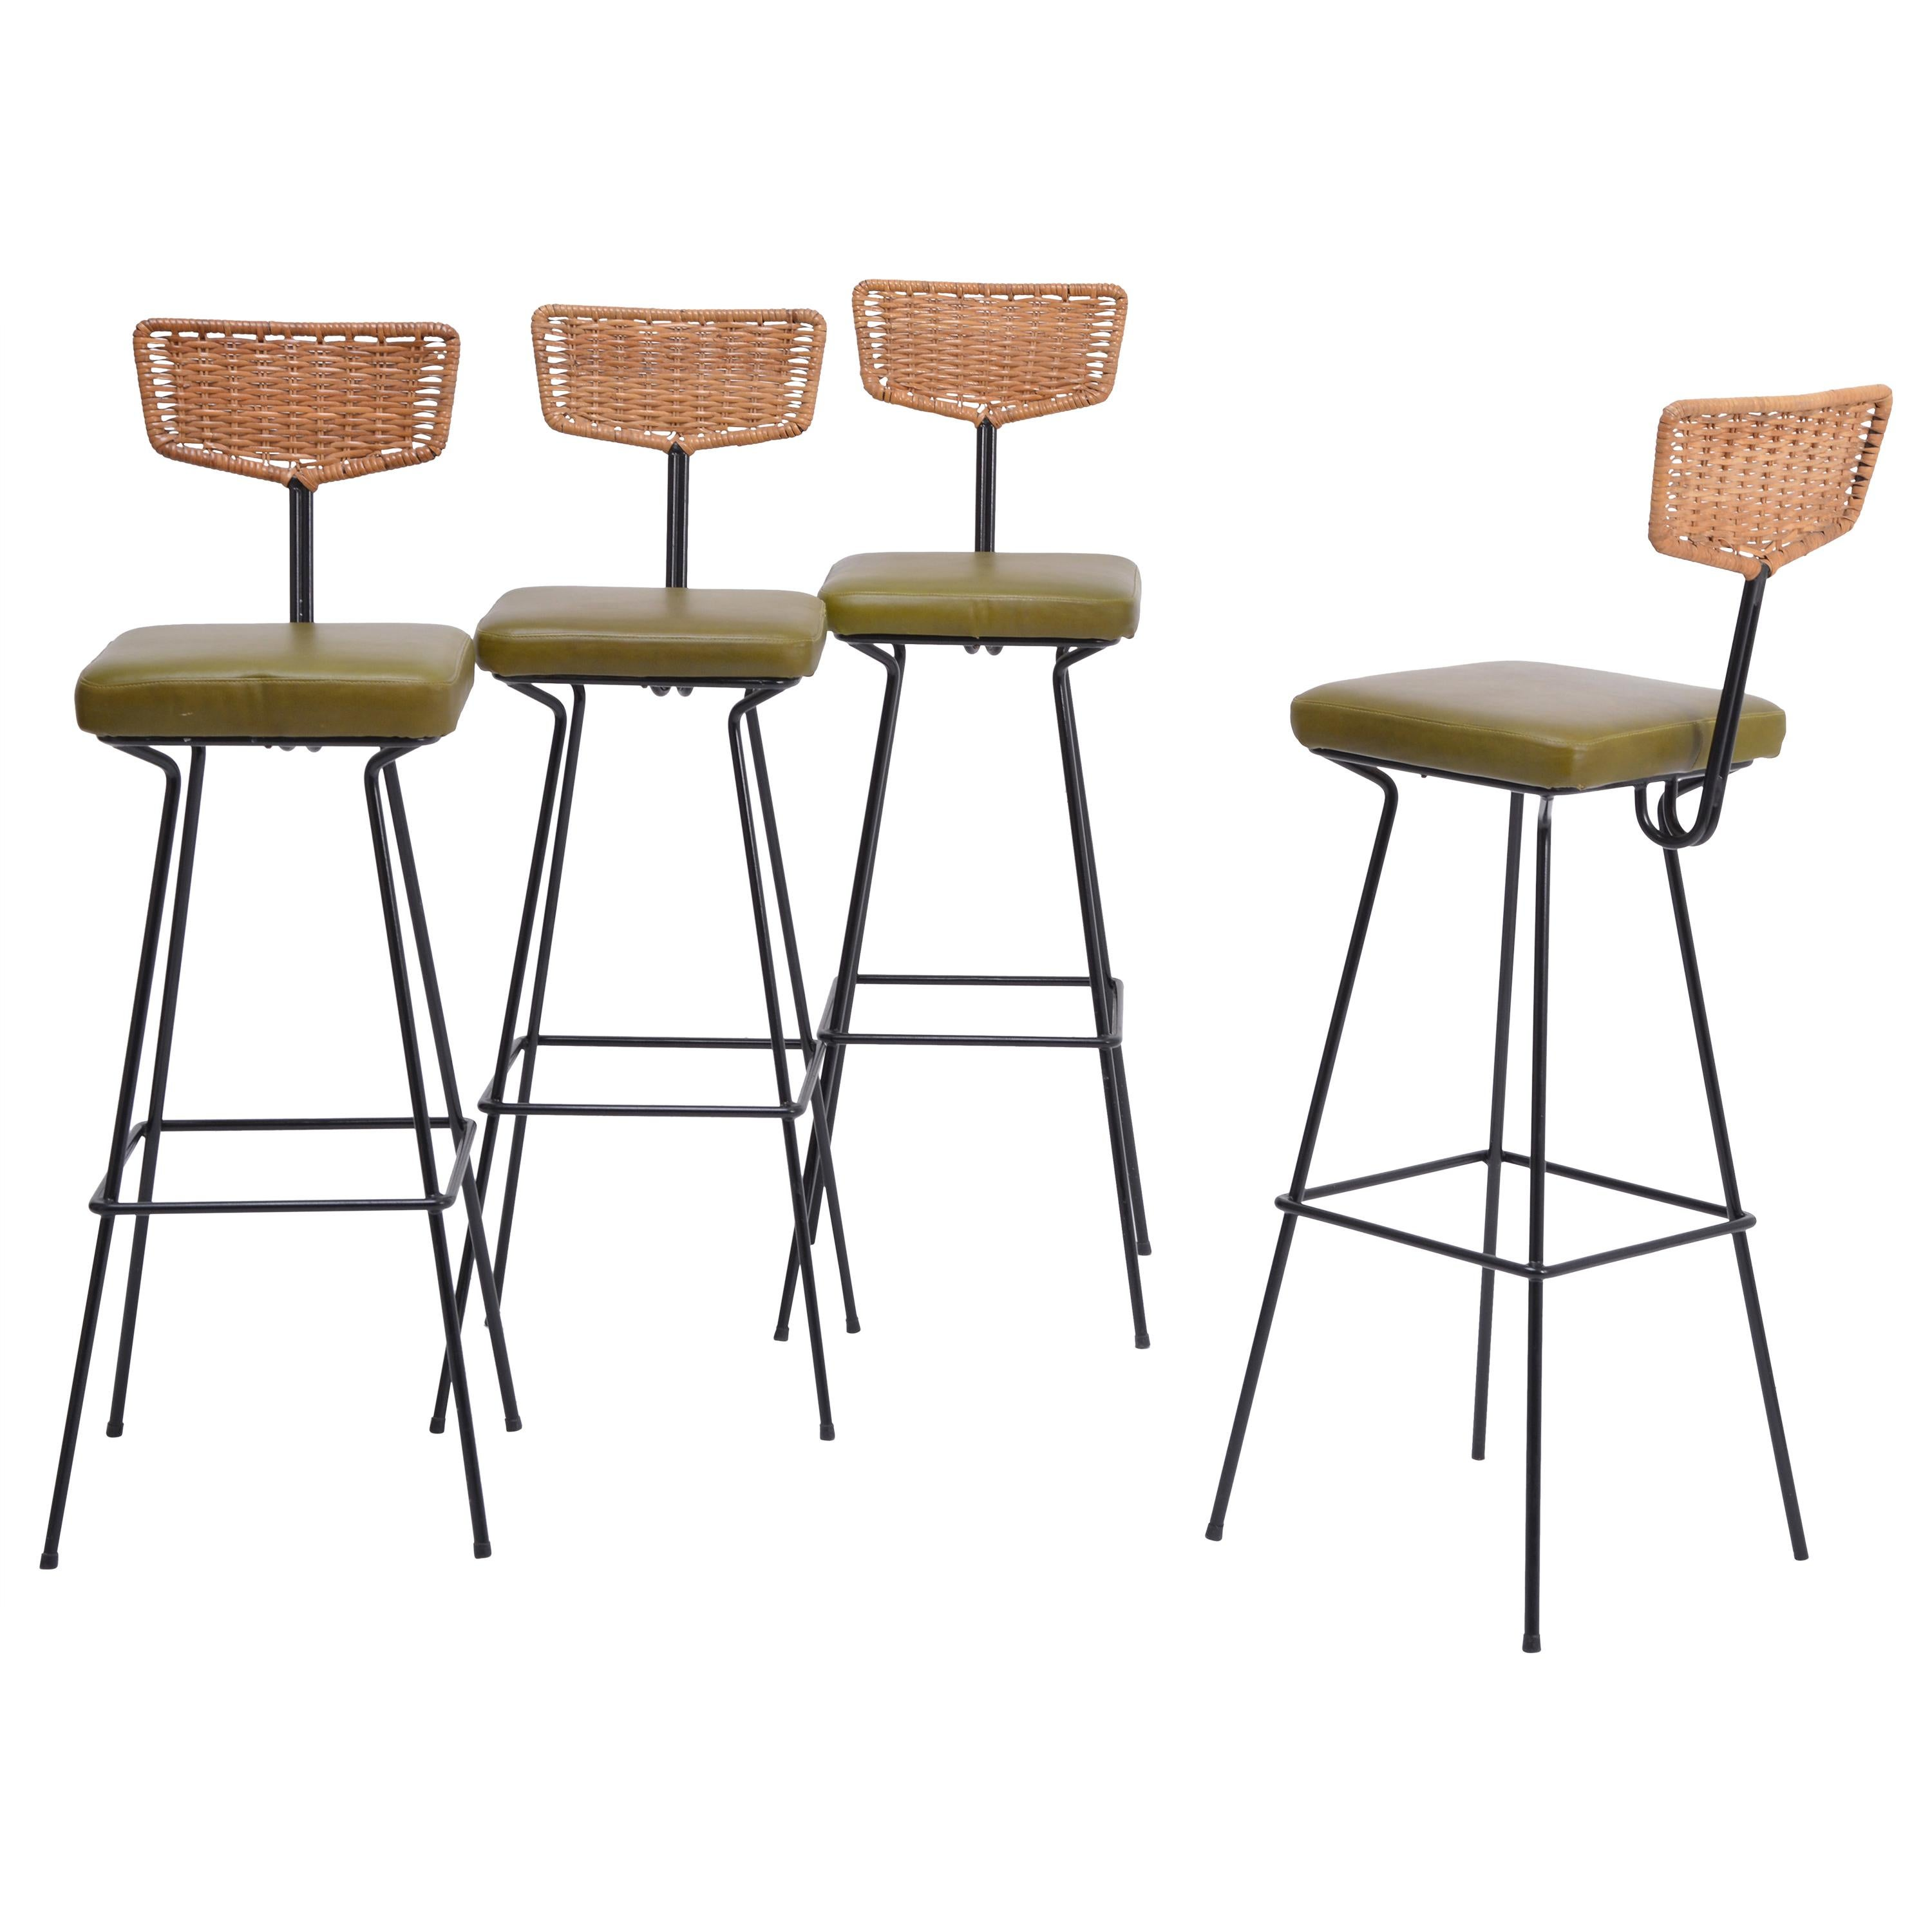 Set of four Mid-Century Modern wicker bar stools by Herta Maria Witzemann